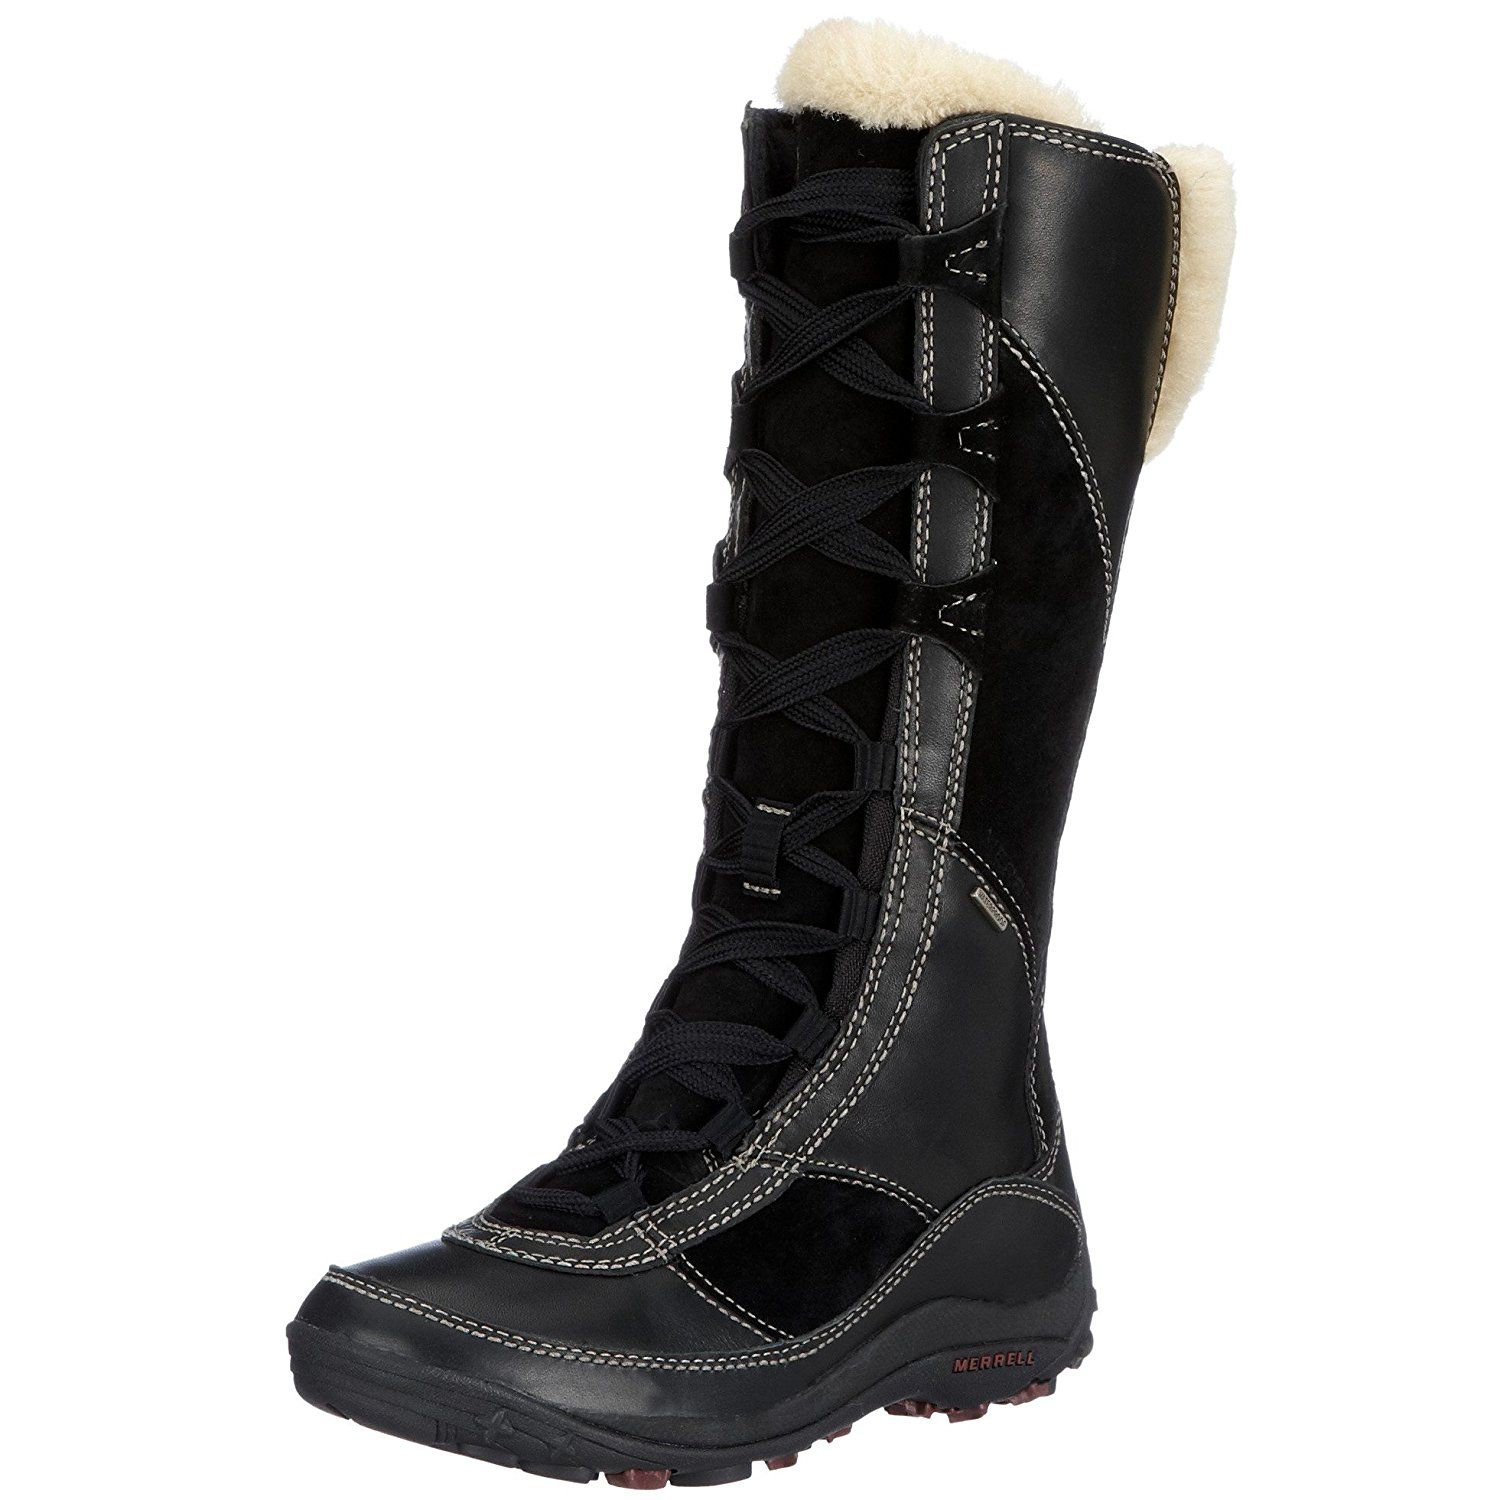 8c3c2ac63a Merrell Women's Prevoz Tall Waterproof Winter Boot ^^ You can find ...